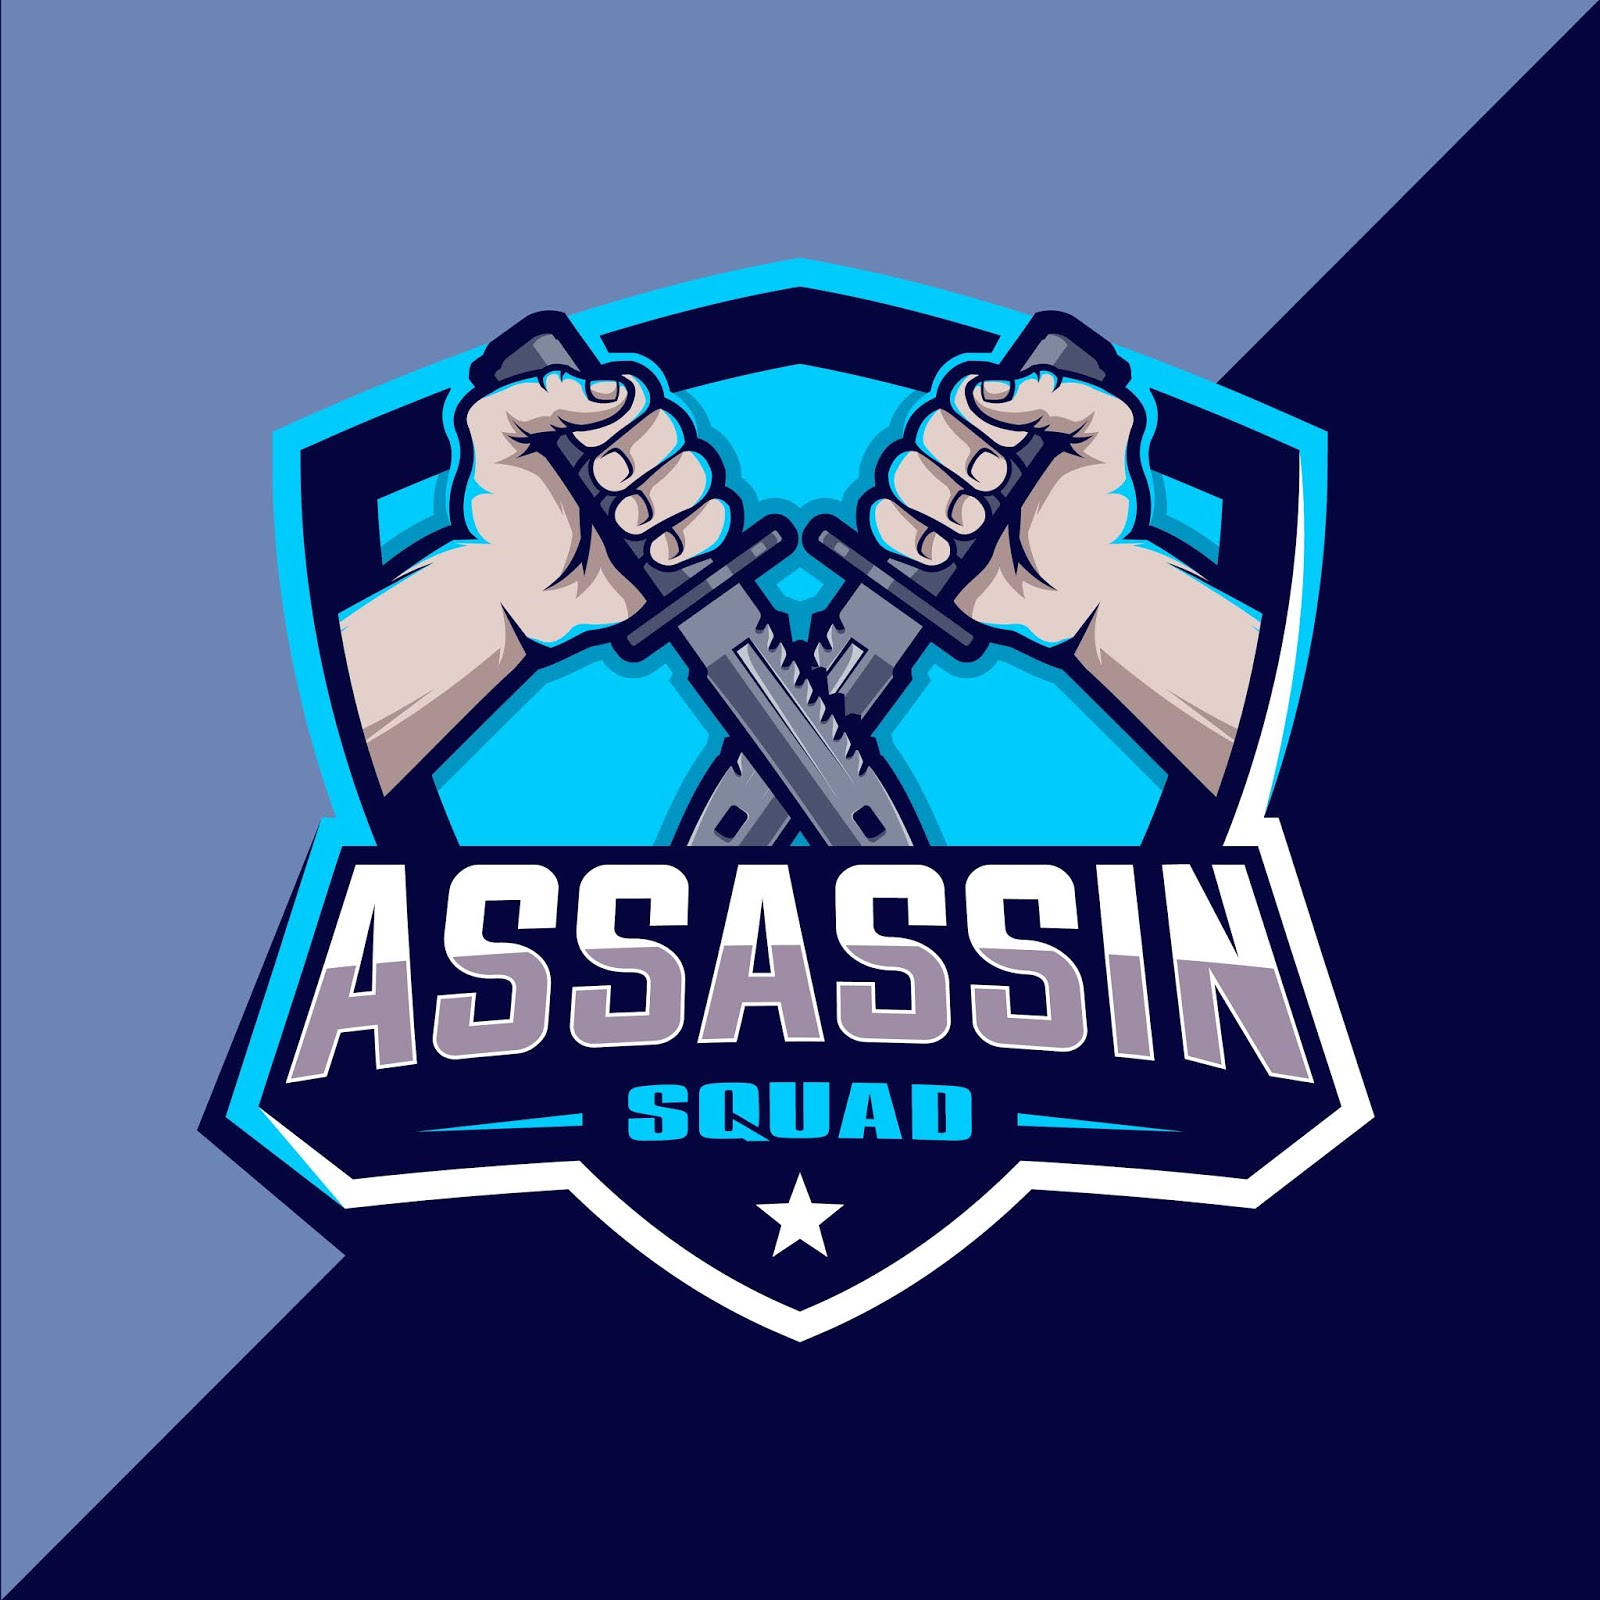 Assassin Squad Esport Logo Design Free Download Vector CDR, AI, EPS and PNG Formats